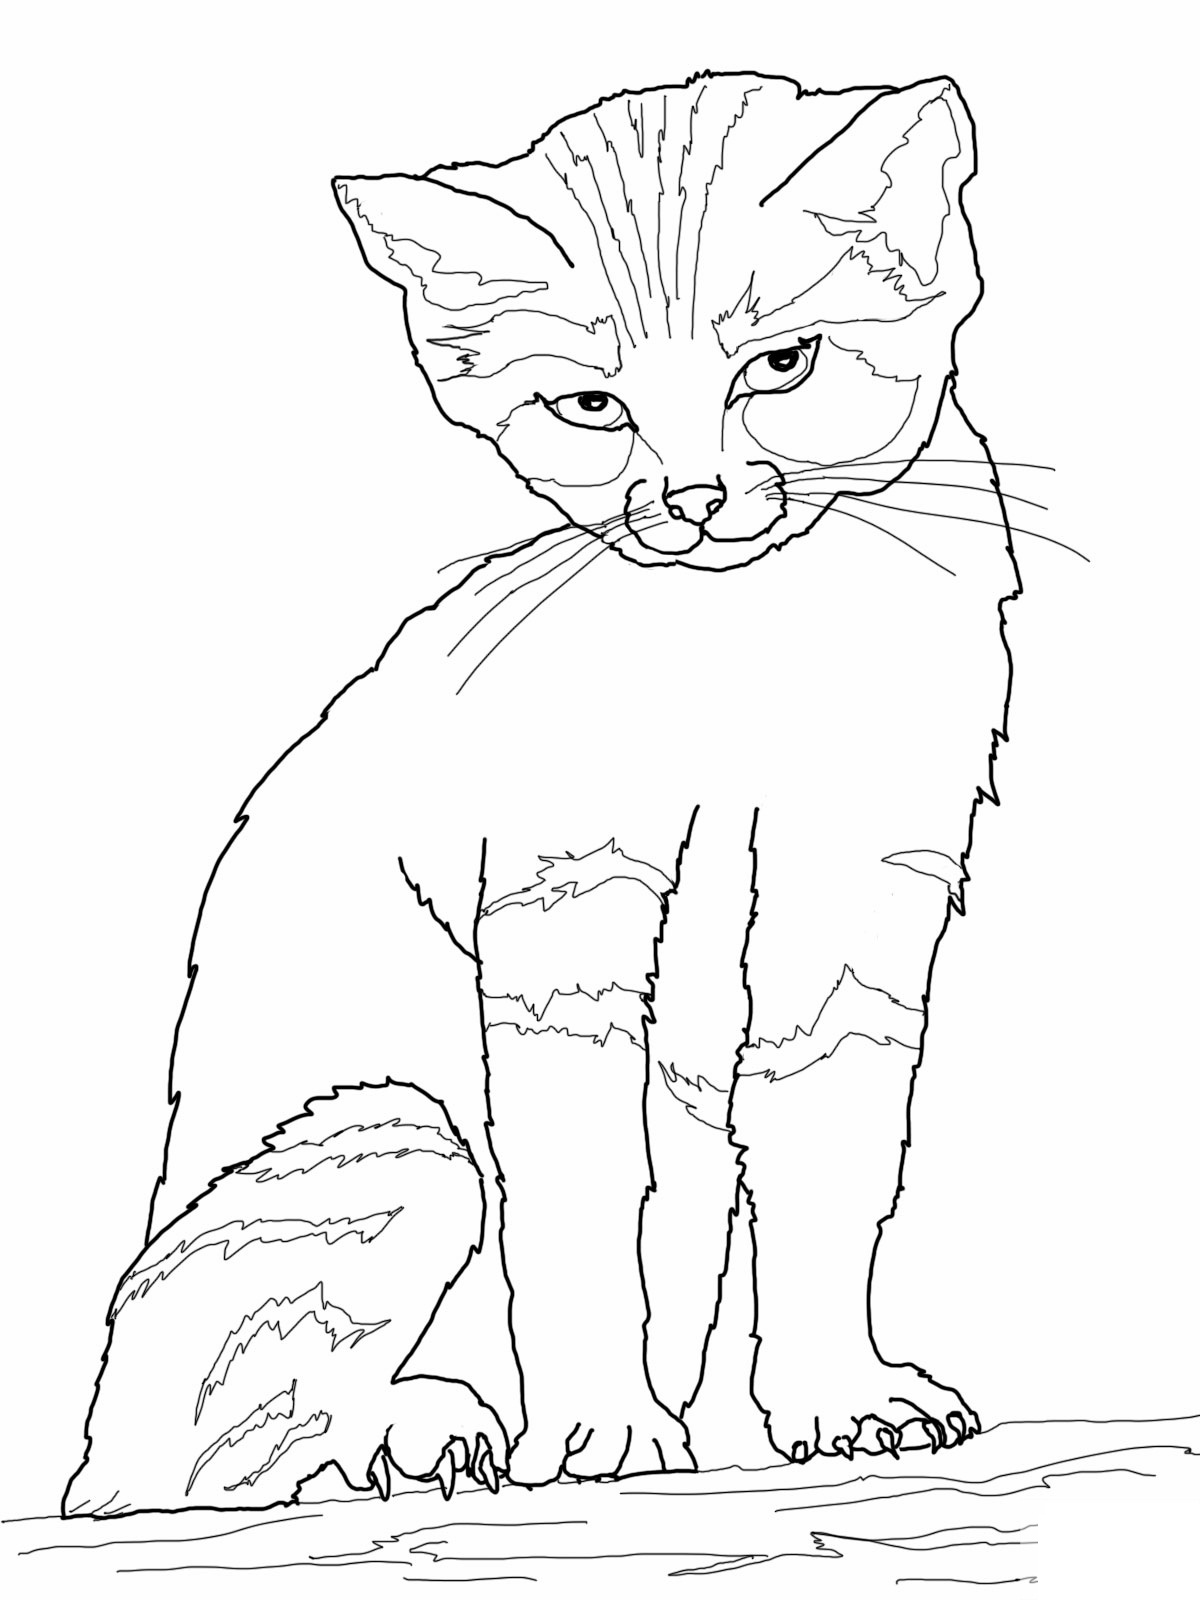 kitty pictures to color cat coloring pages for adults best coloring pages for kids color to kitty pictures